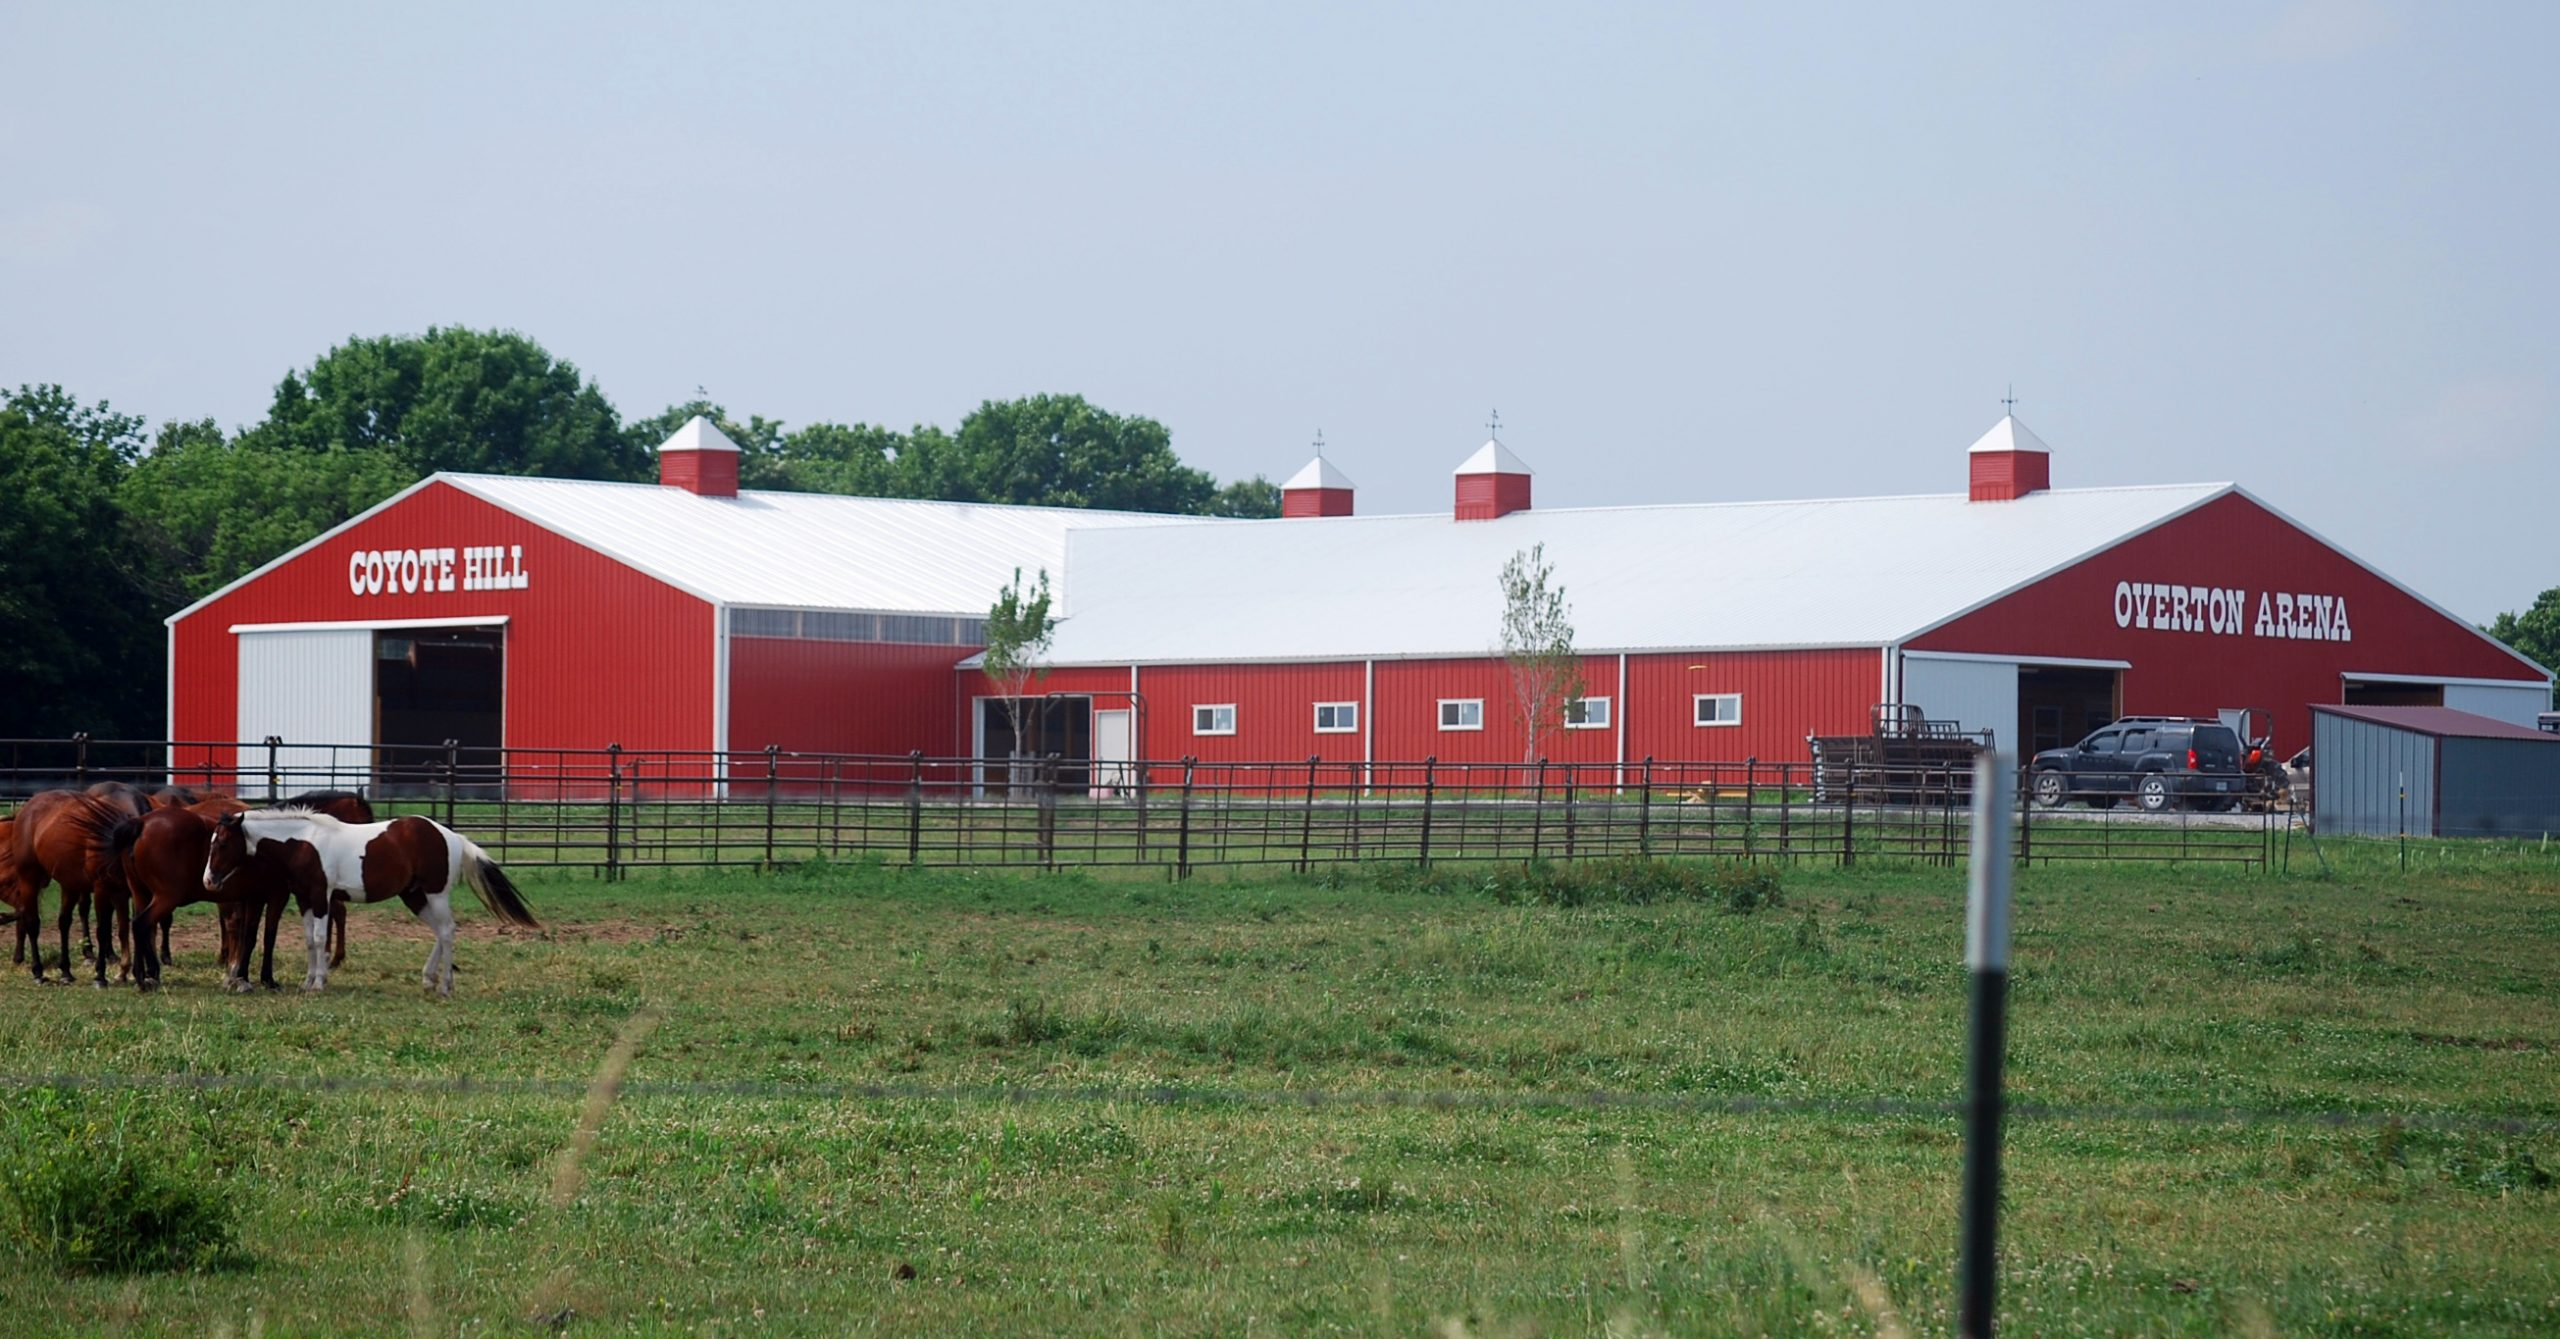 Overton Arena is completed, with 14 stalls and an indoor riding arena.